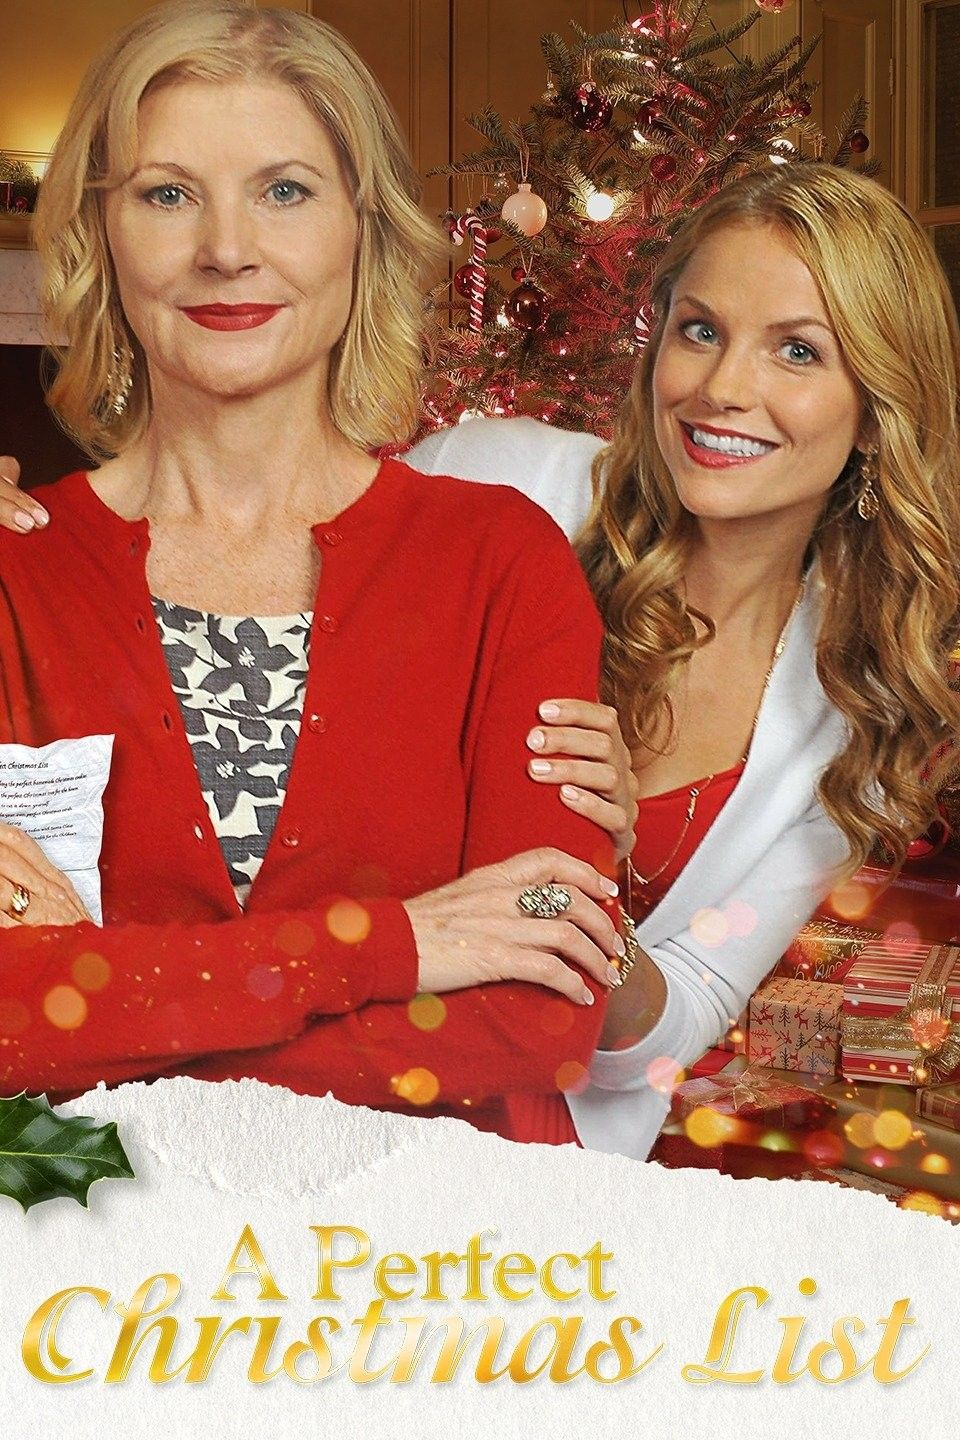 Pin by MiMi Kelly on Hallmark Movies (With images